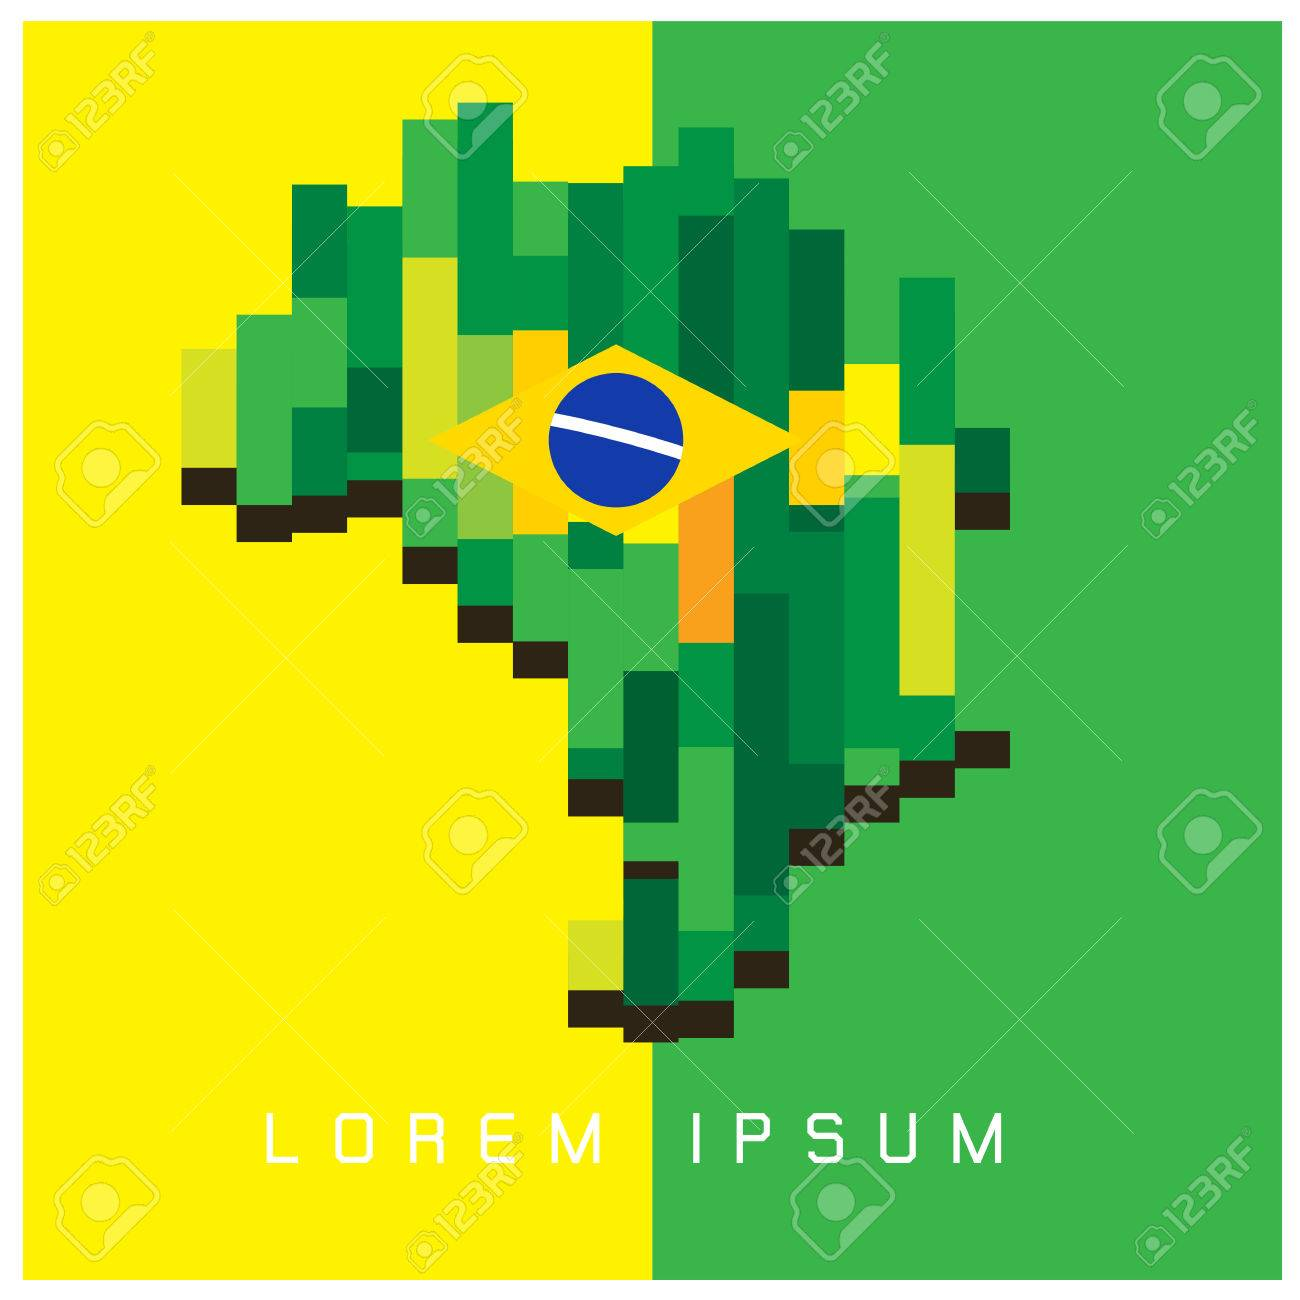 Brazil world map with a pixel diamond texture vector background brazil world map with a pixel diamond texture vector background stock vector 44228734 gumiabroncs Choice Image